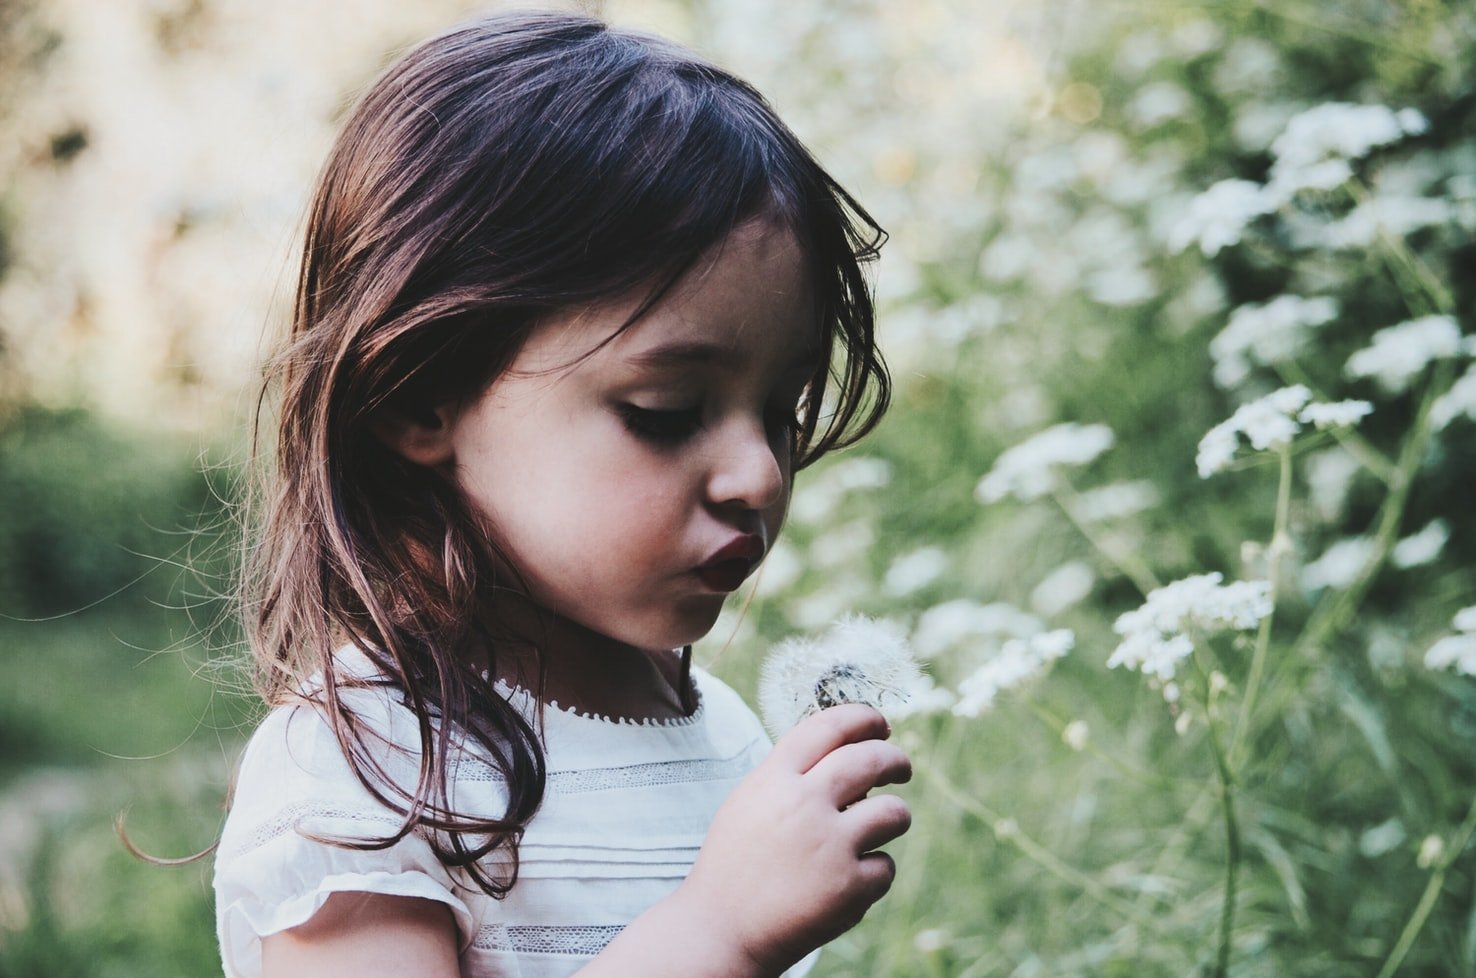 I loved his adorable daughter May | Source: Unsplash